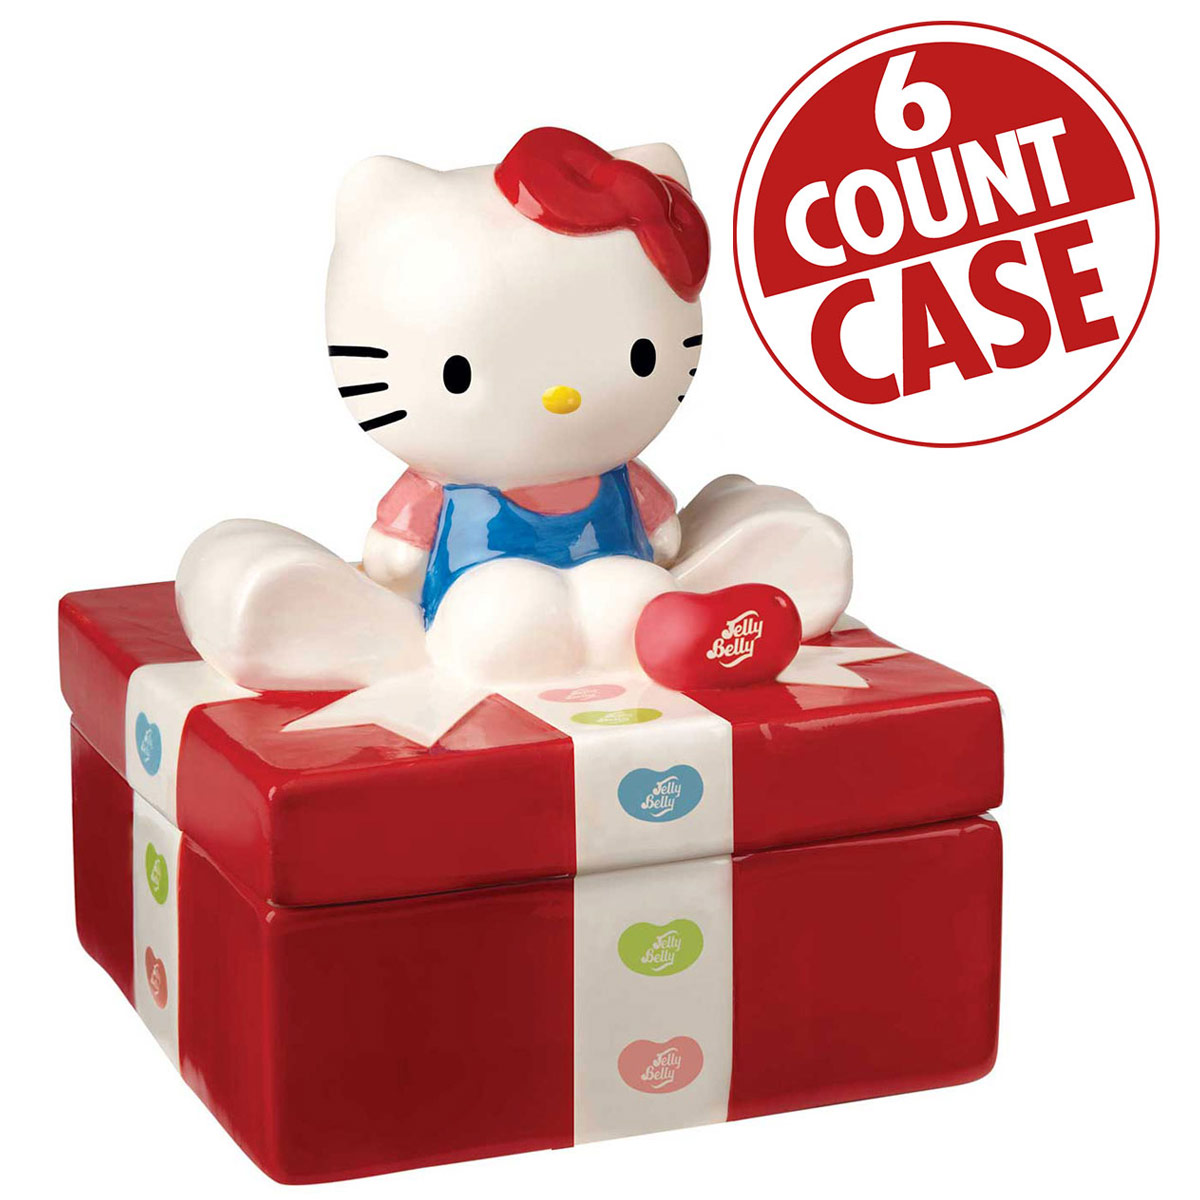 Hello Kitty<sup>®</sup> Candy Dish - 6 Count Case